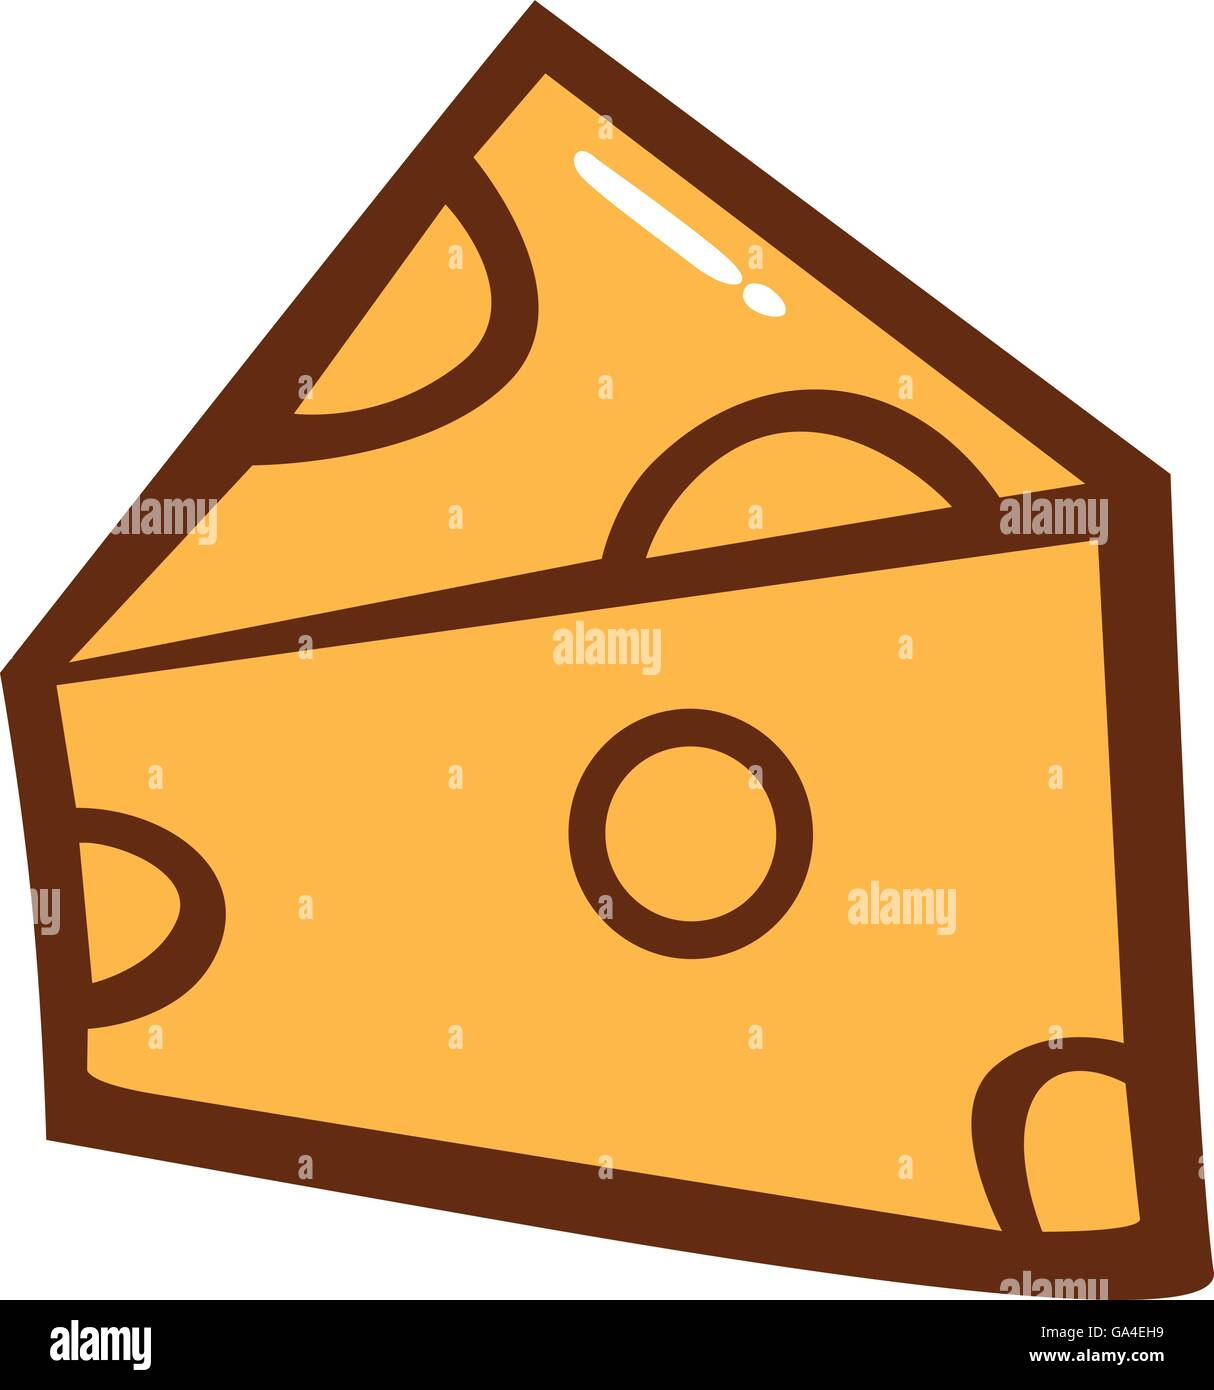 cheese slice clipart vector stock vector art illustration vector rh alamy com Swiss Cheese Slice Clip Art Swiss Cheese Slice Clip Art